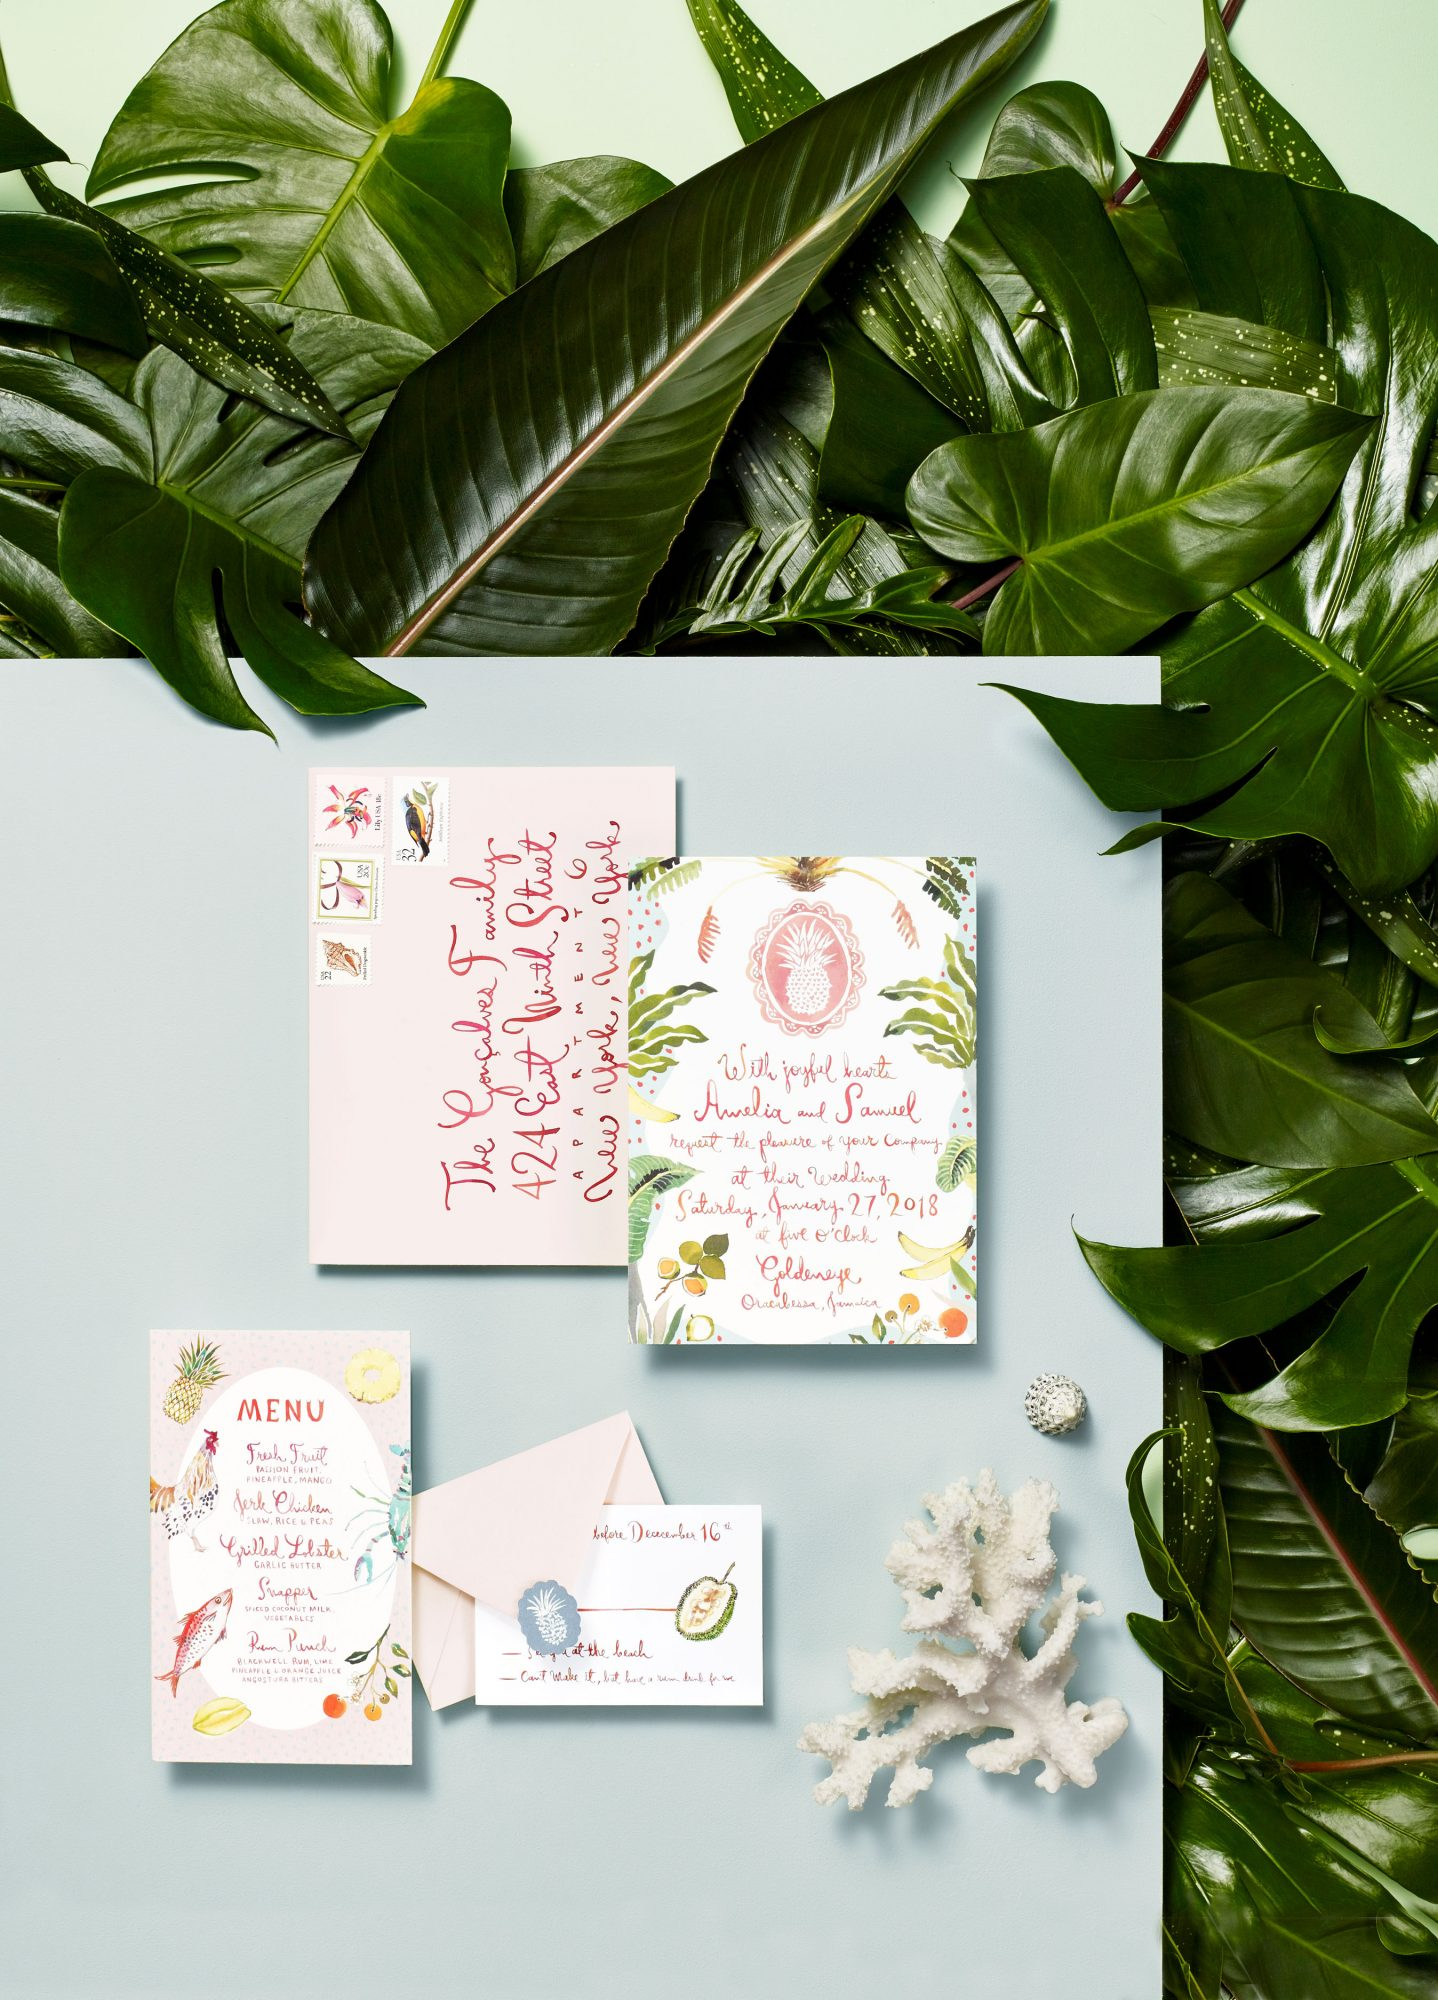 island-inspired stationery